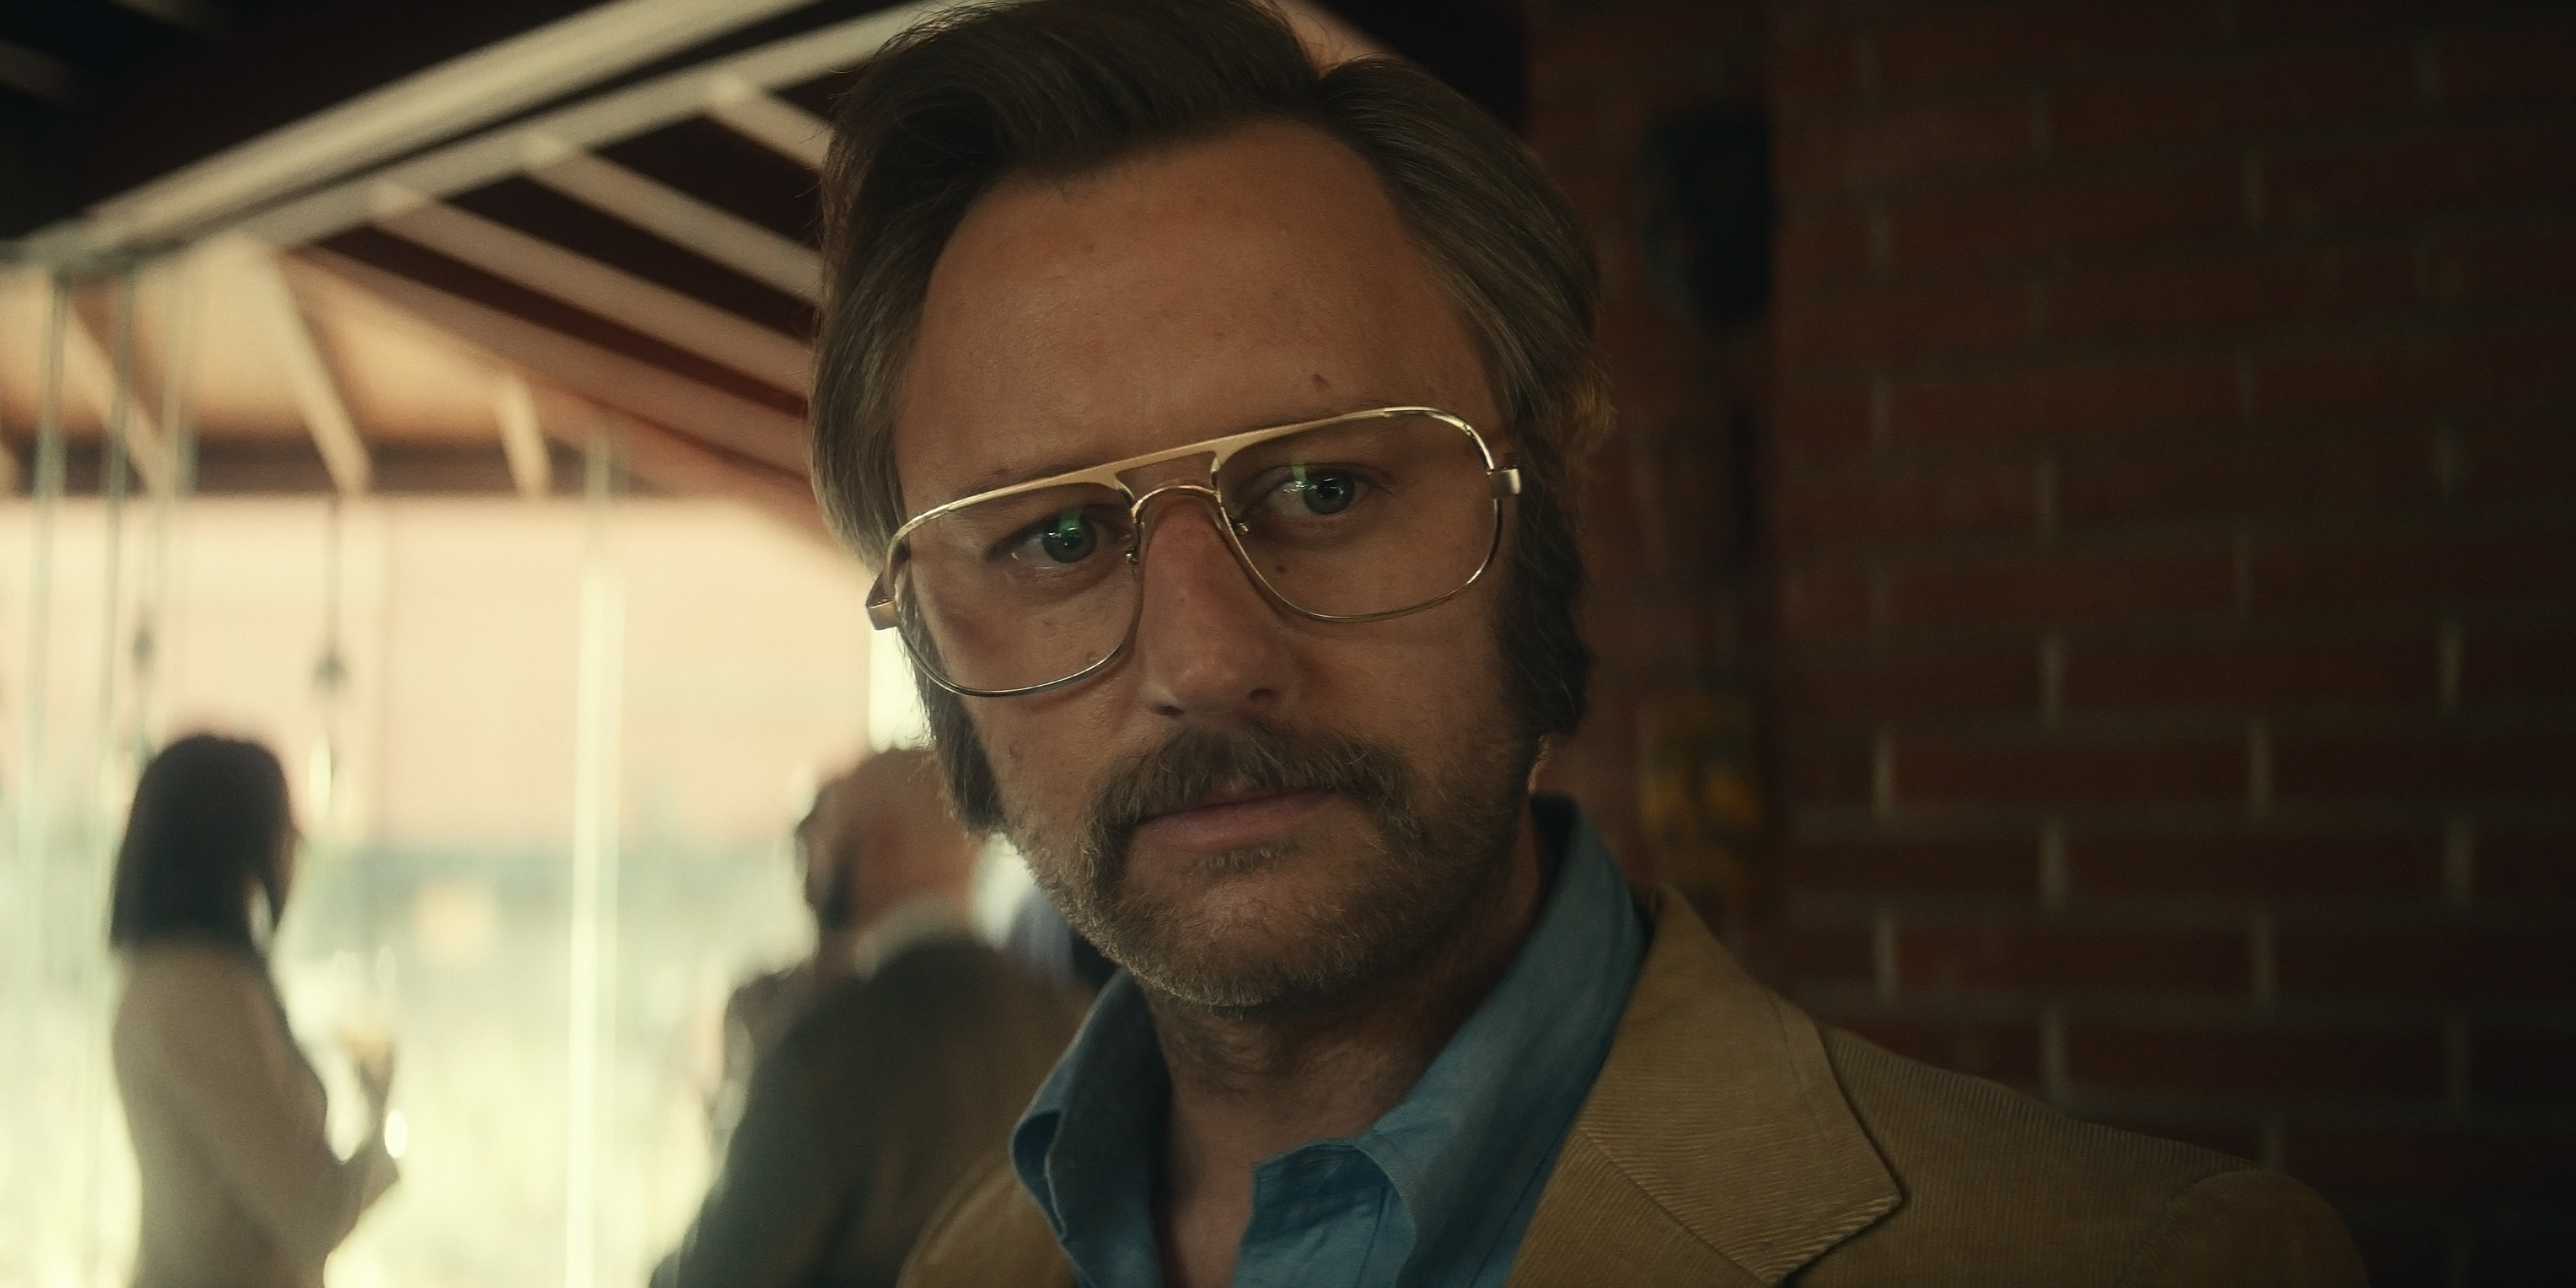 Rory Scovel in 'Physical' is not the funny man you're used to seeing.